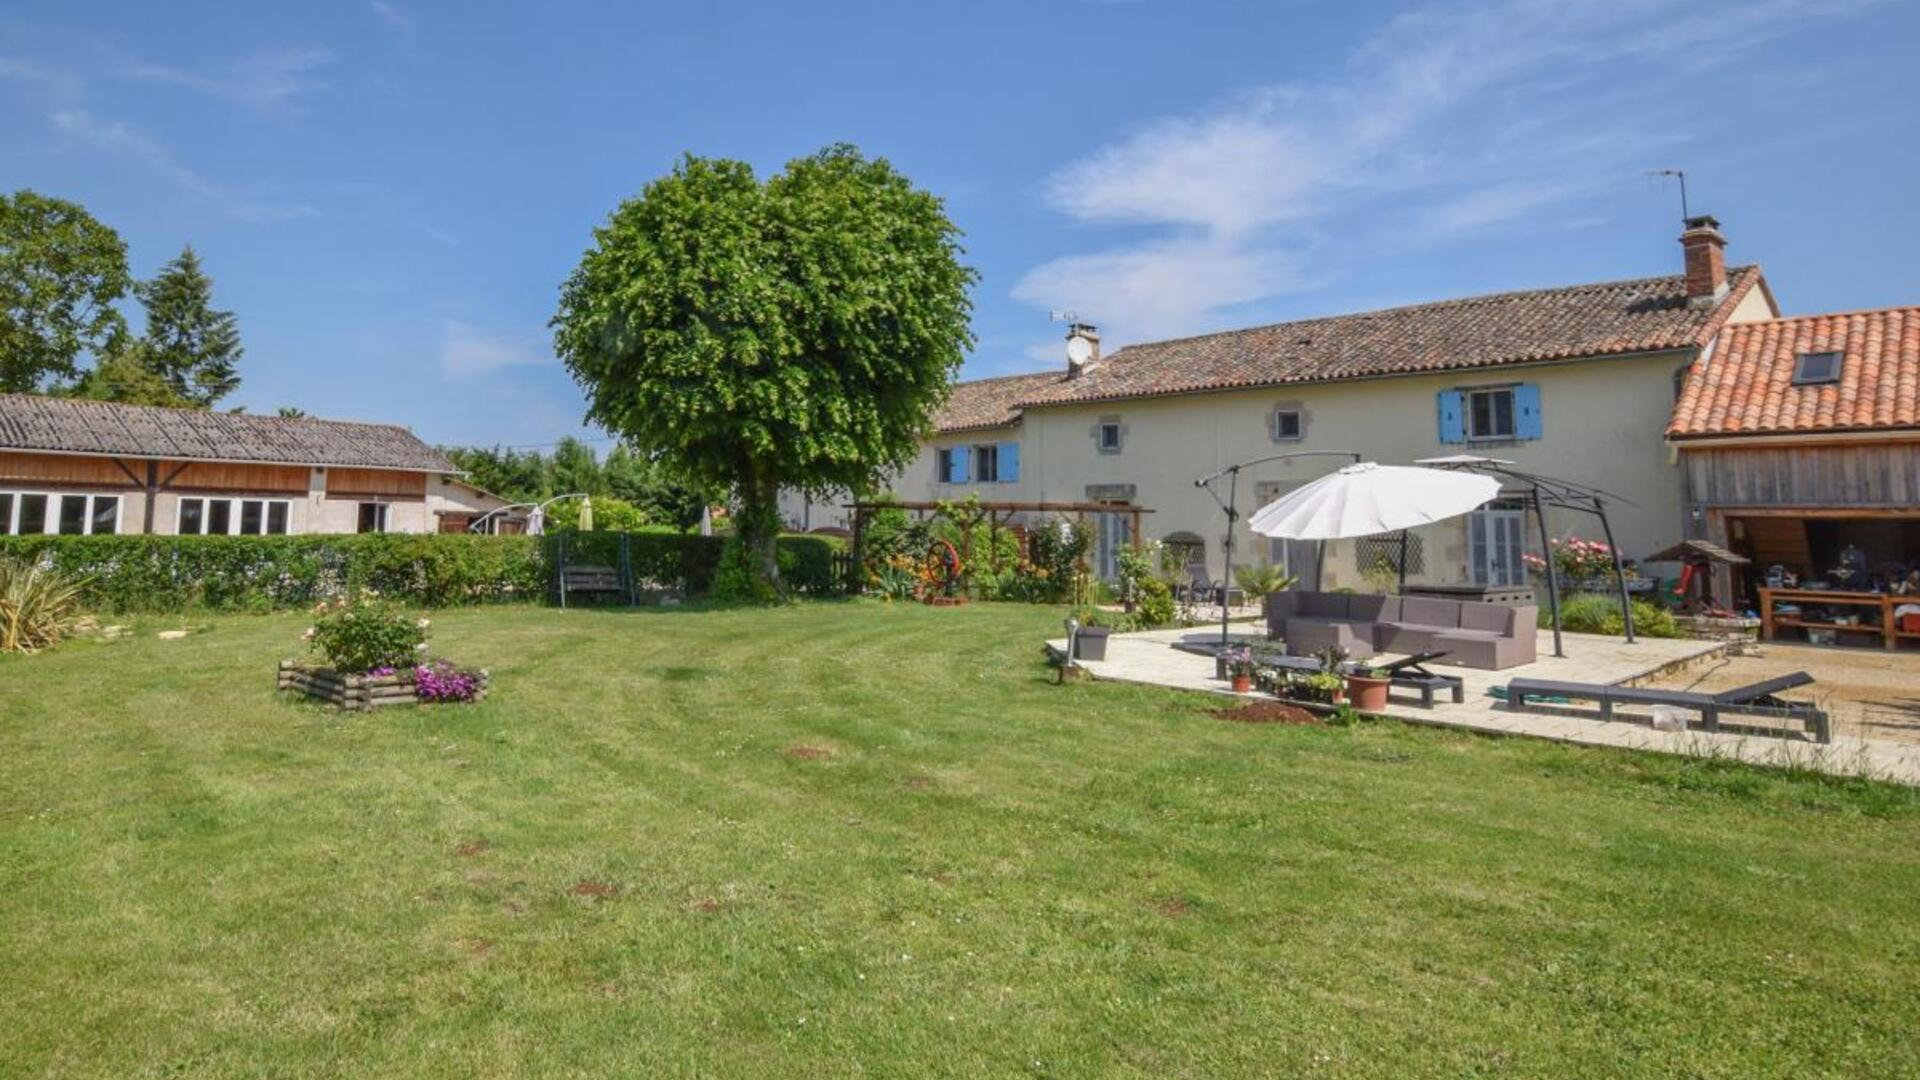 Two bedroom self-catering holiday cottages in Brux